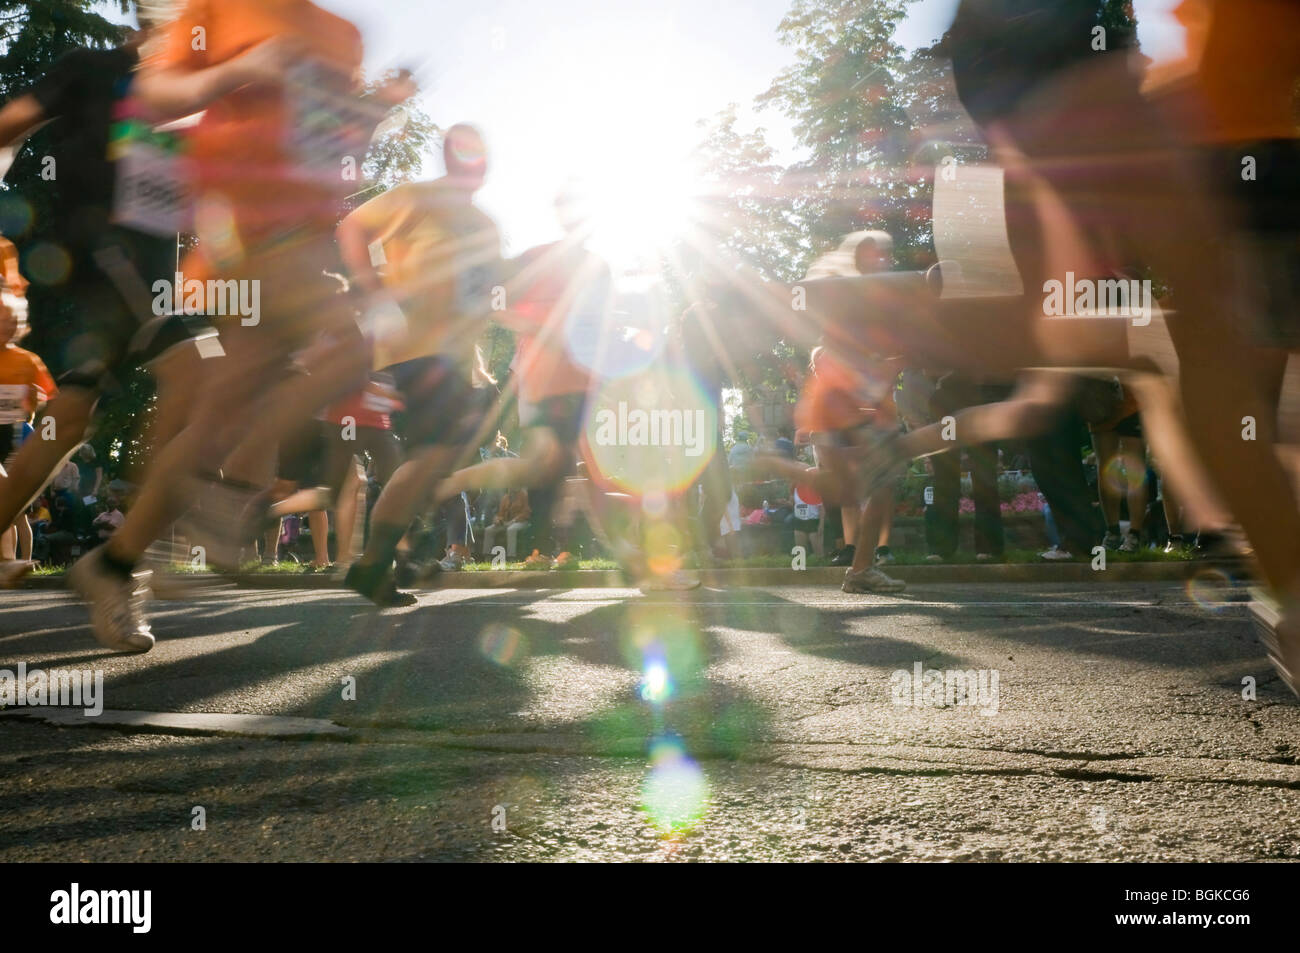 Marathon runner with backlight and motion blur - Stock Image